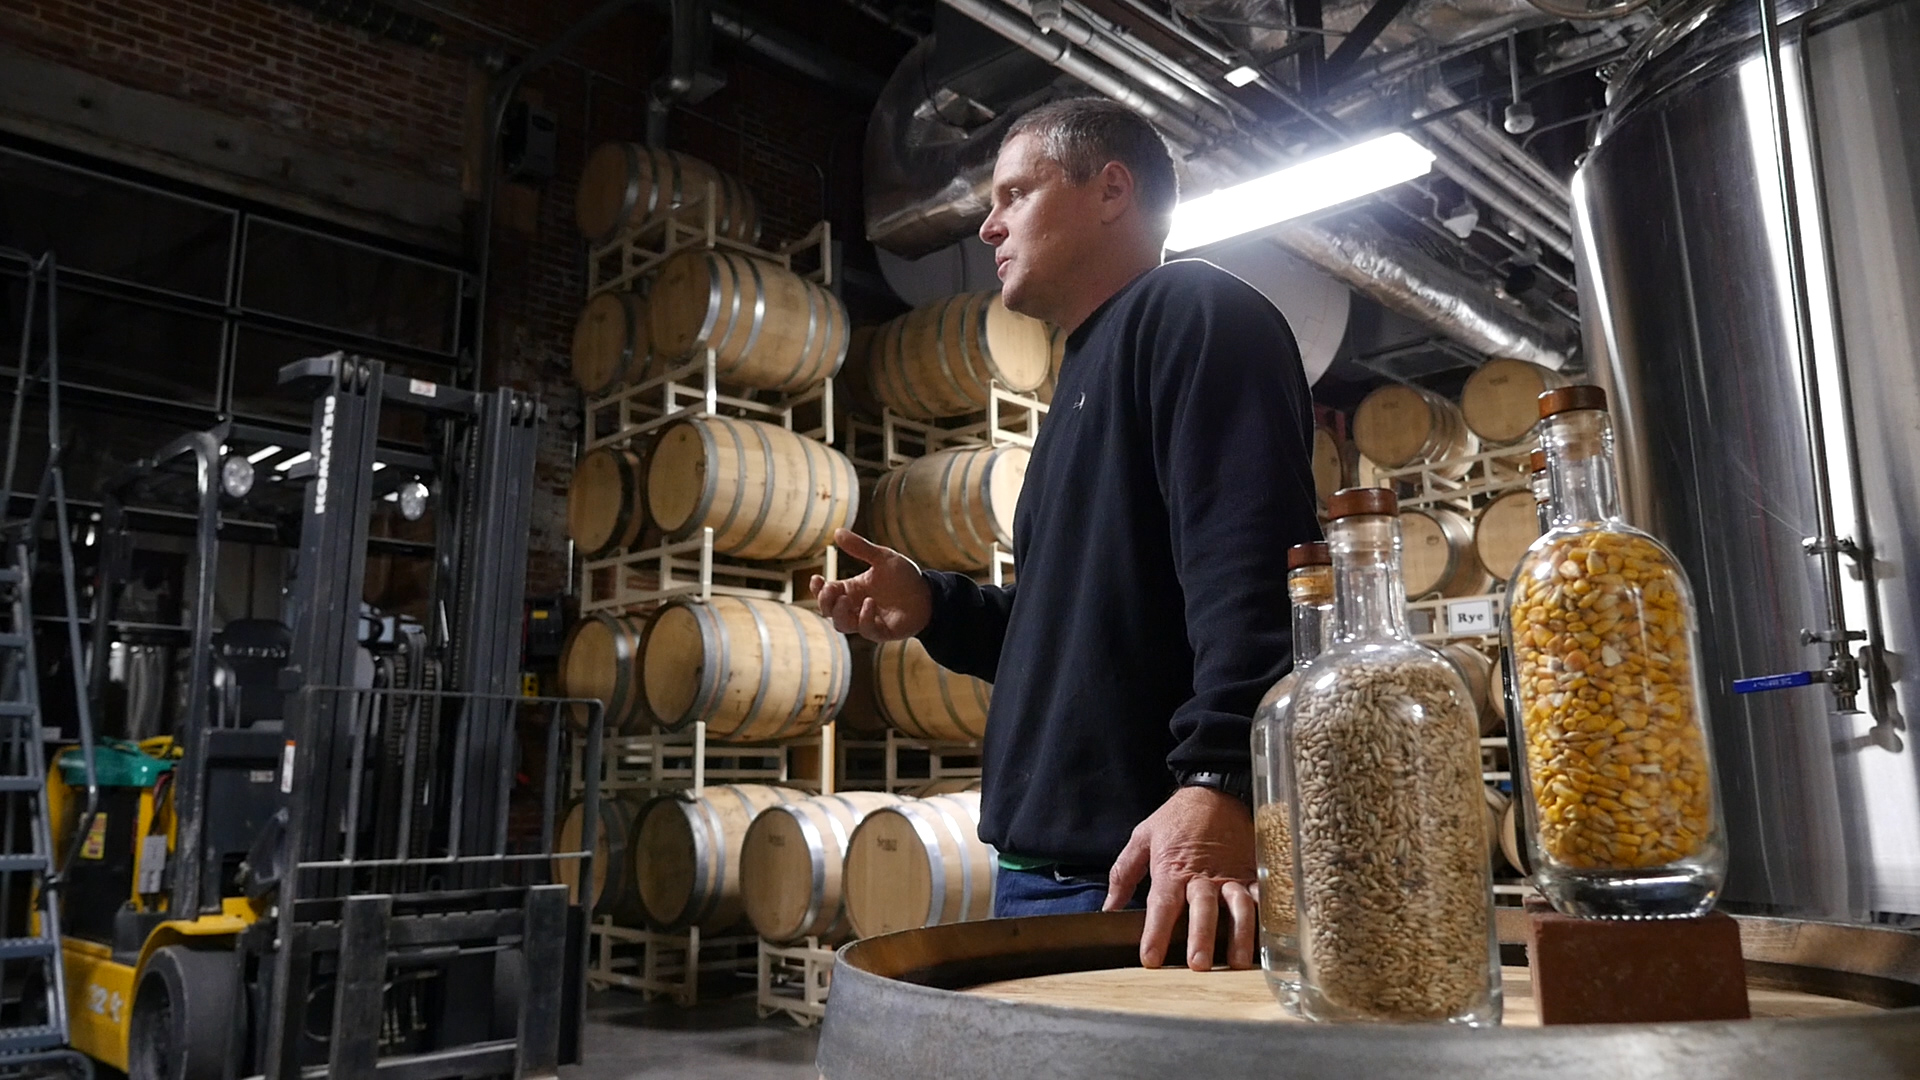 Kevin Lloyd stands in the Big Spring Distillery with grains in the foreground and aging barrels in the background